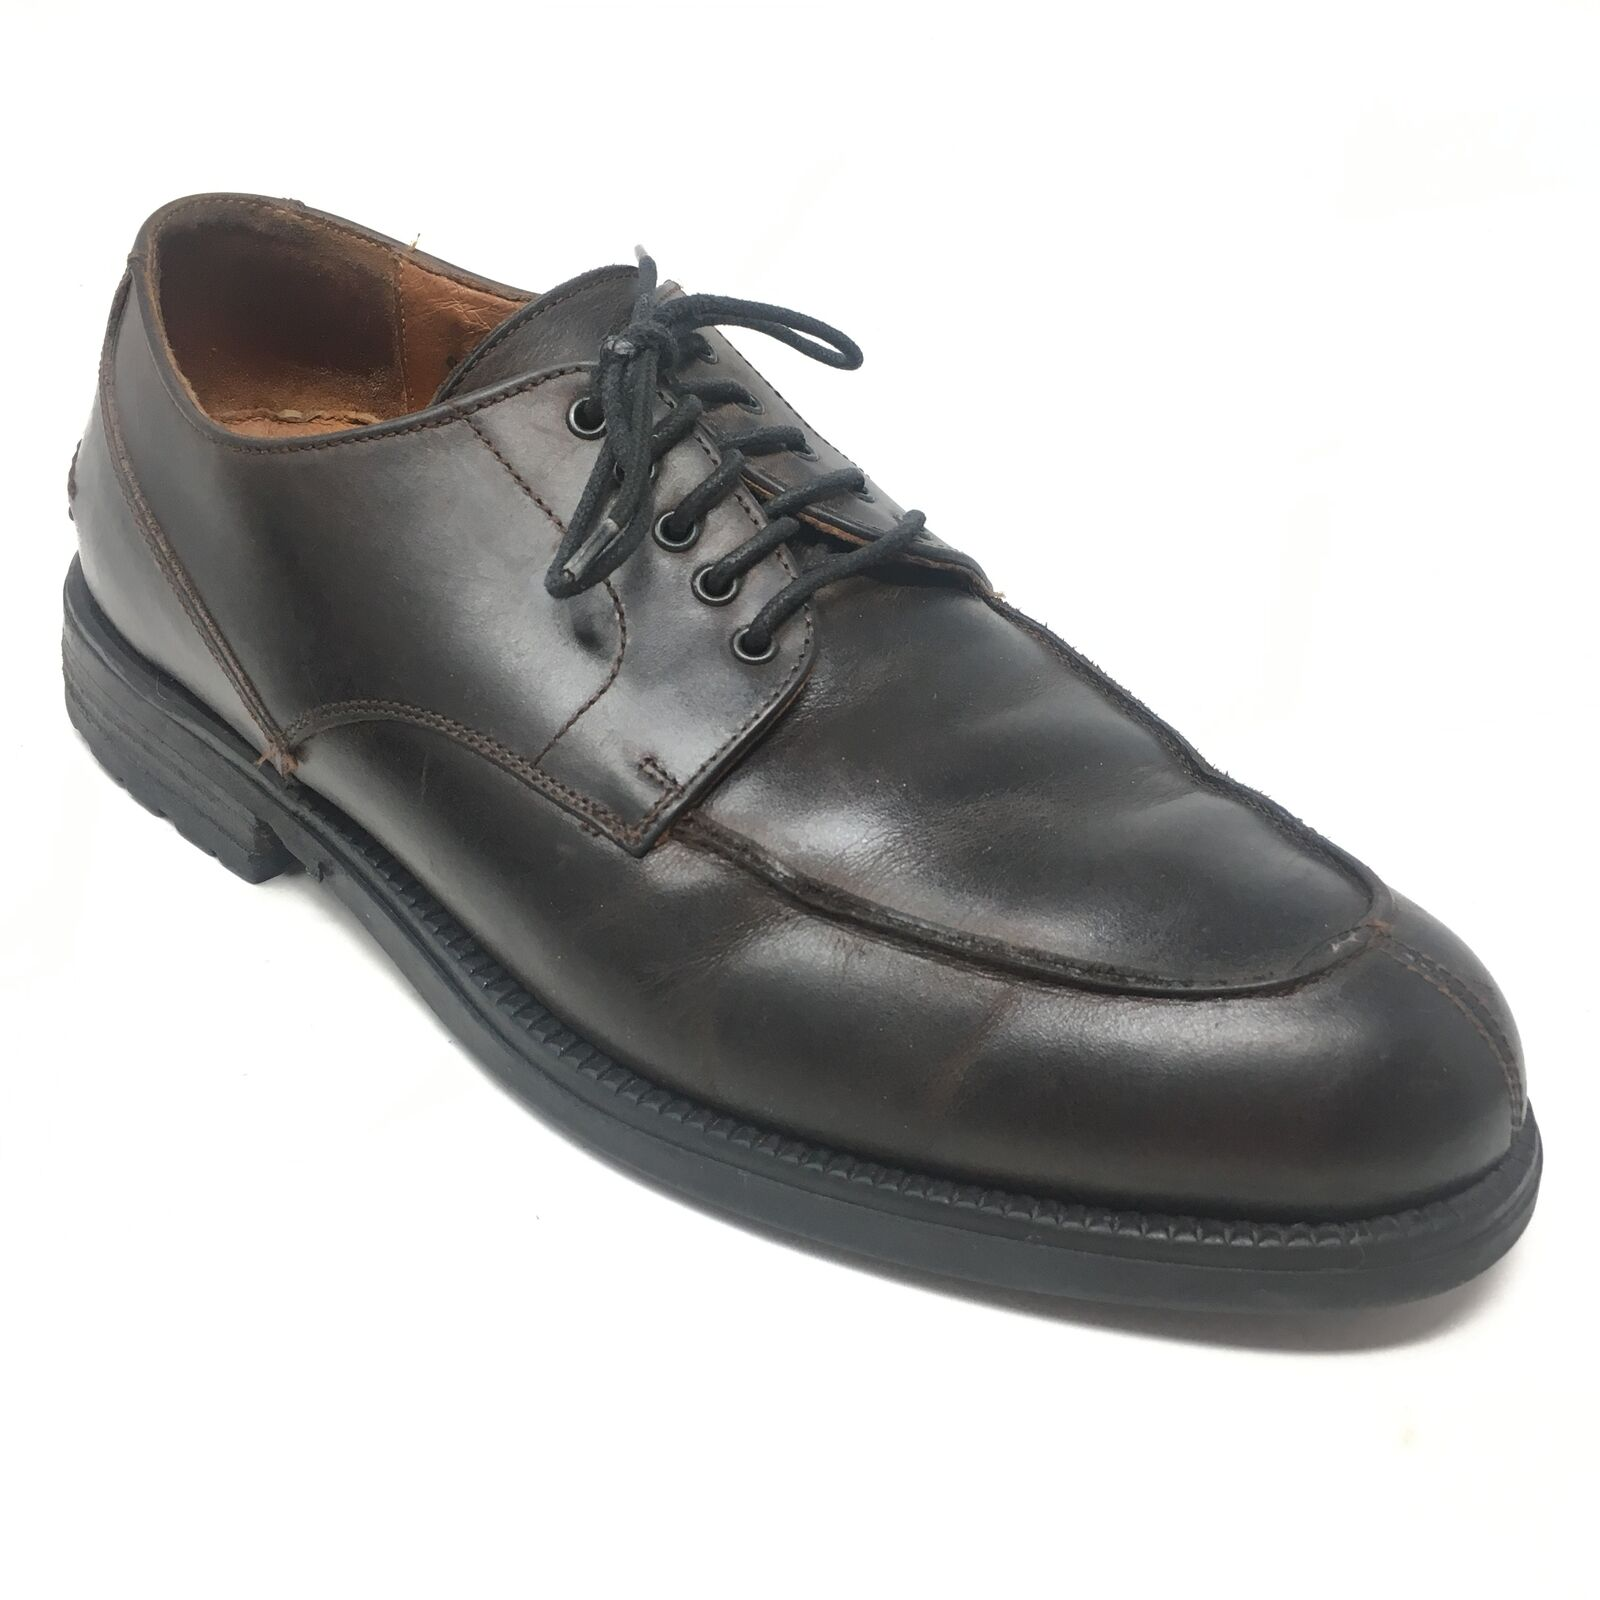 Men's Johnston & Murphy Passport Oxfords shoes Sz 9M Brown Leather Made  A6